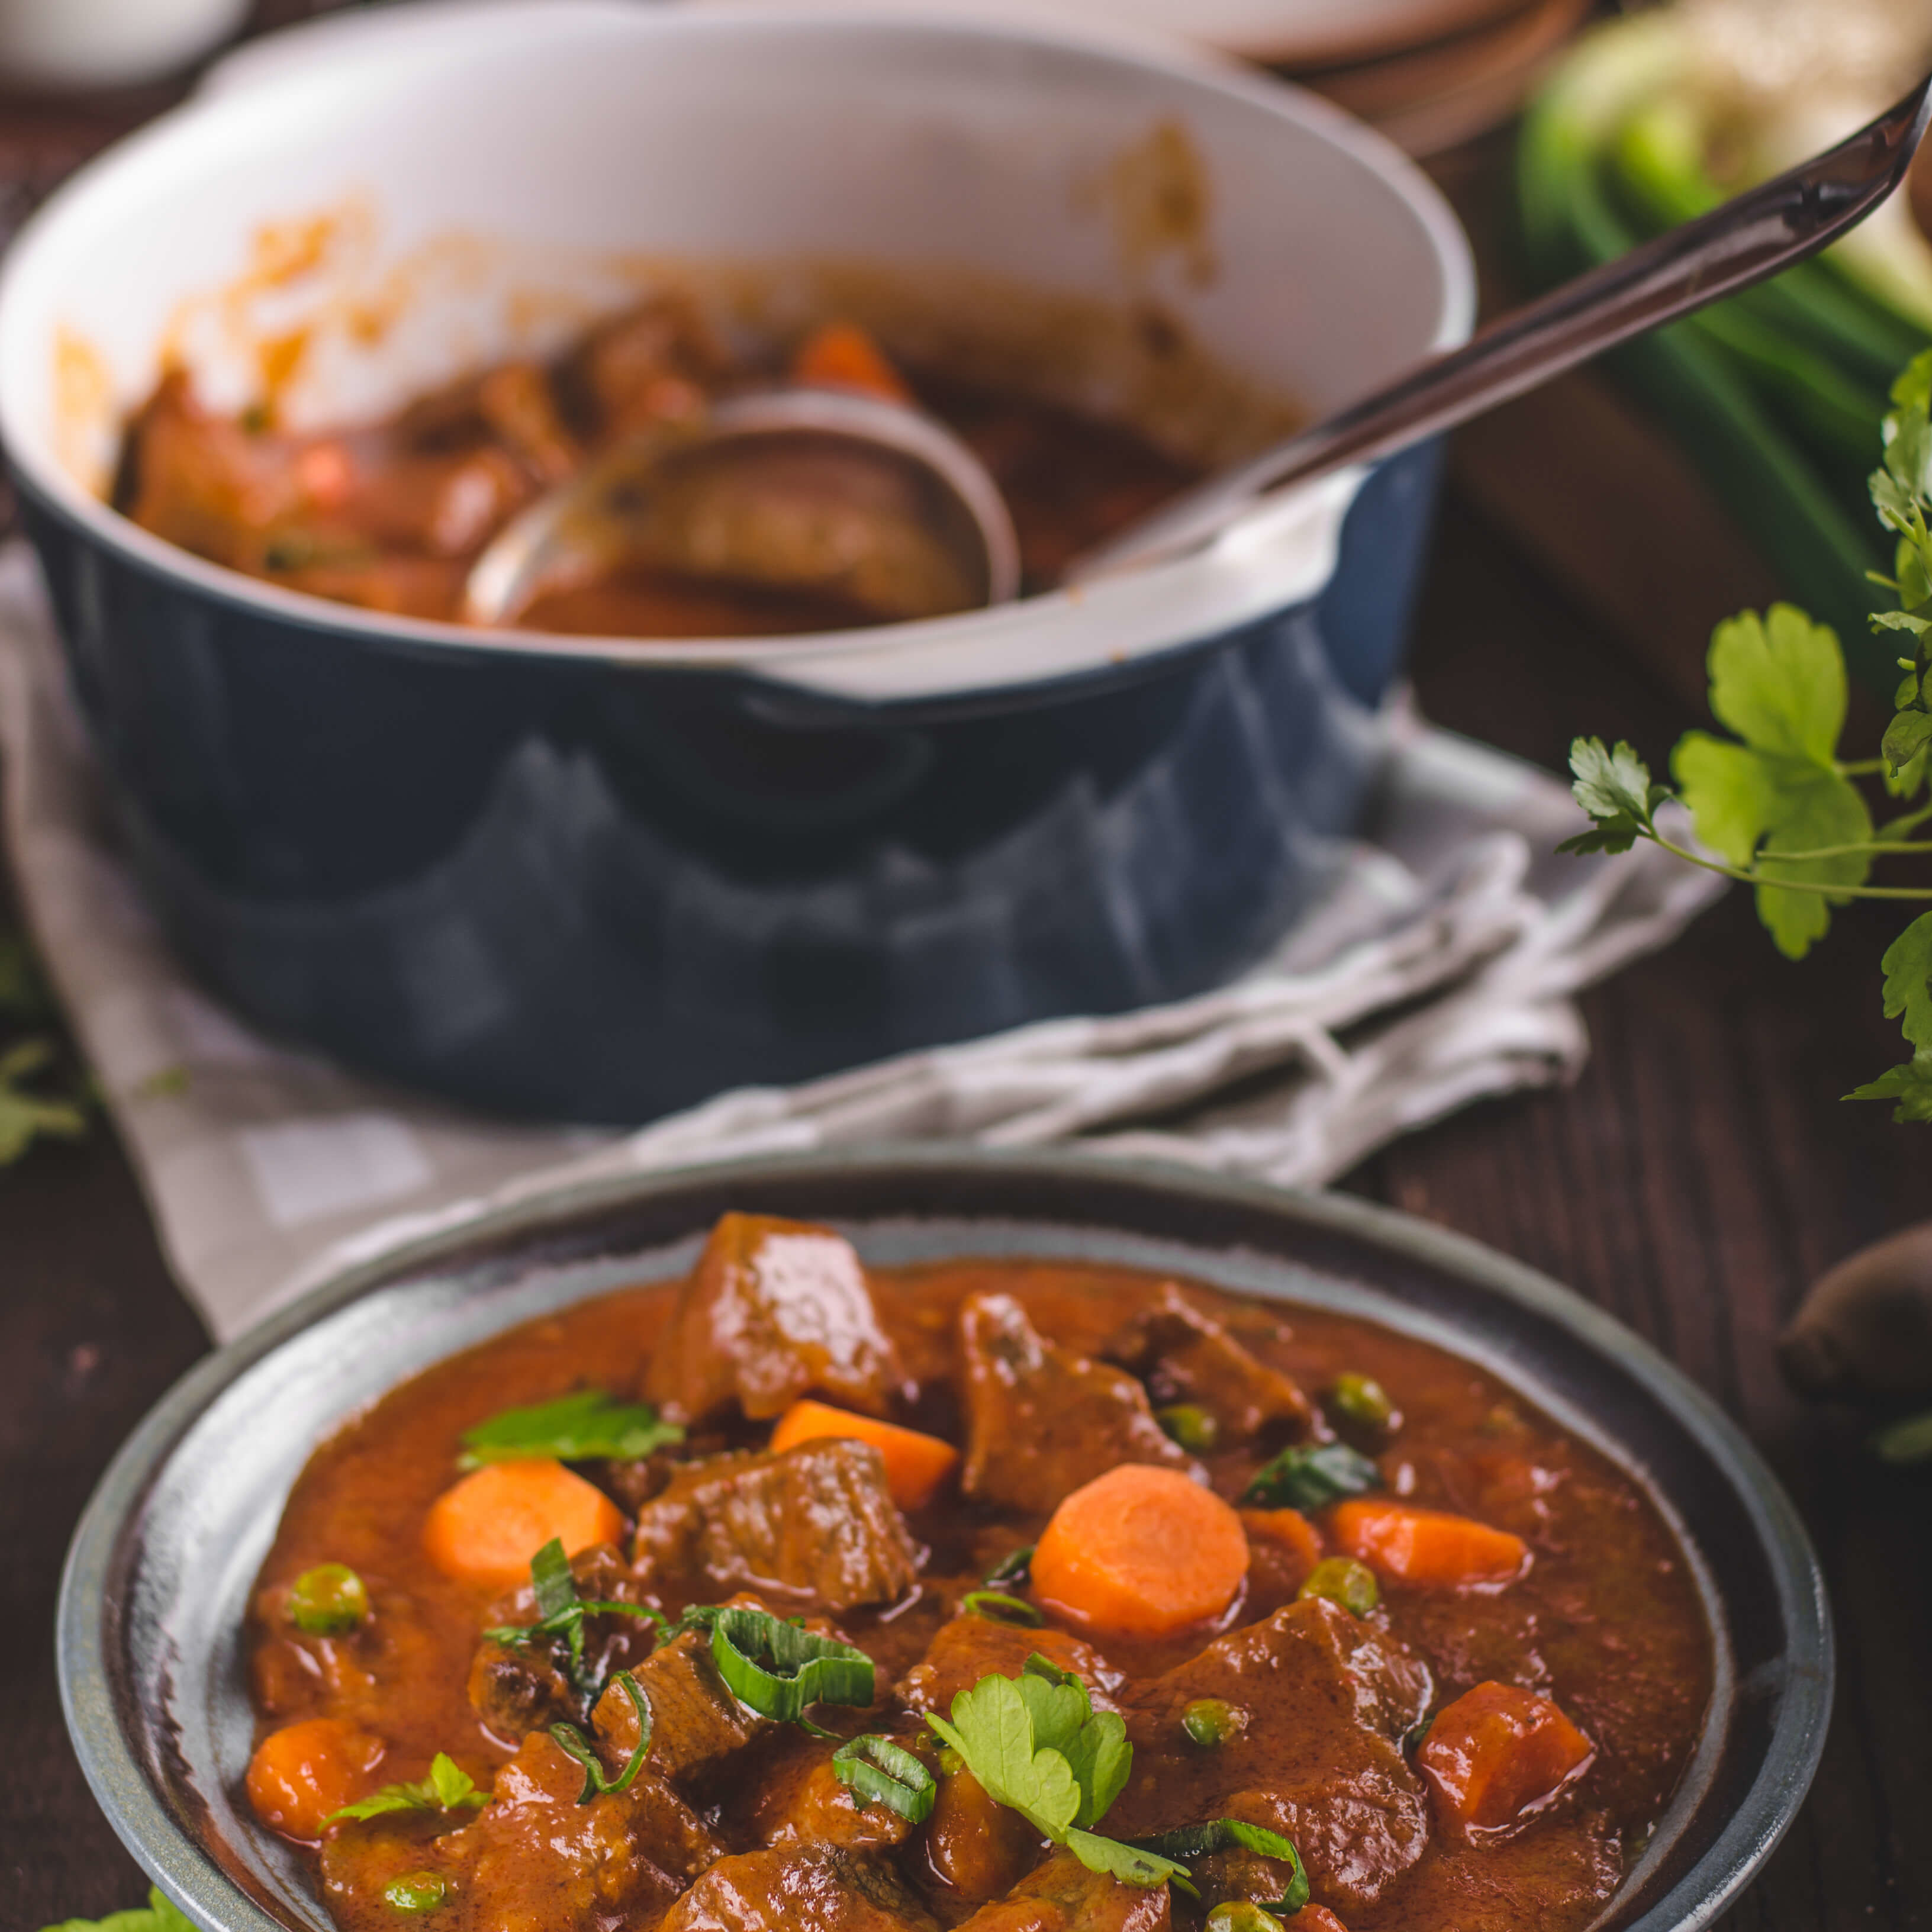 Beef stew with Chateau Climens wine